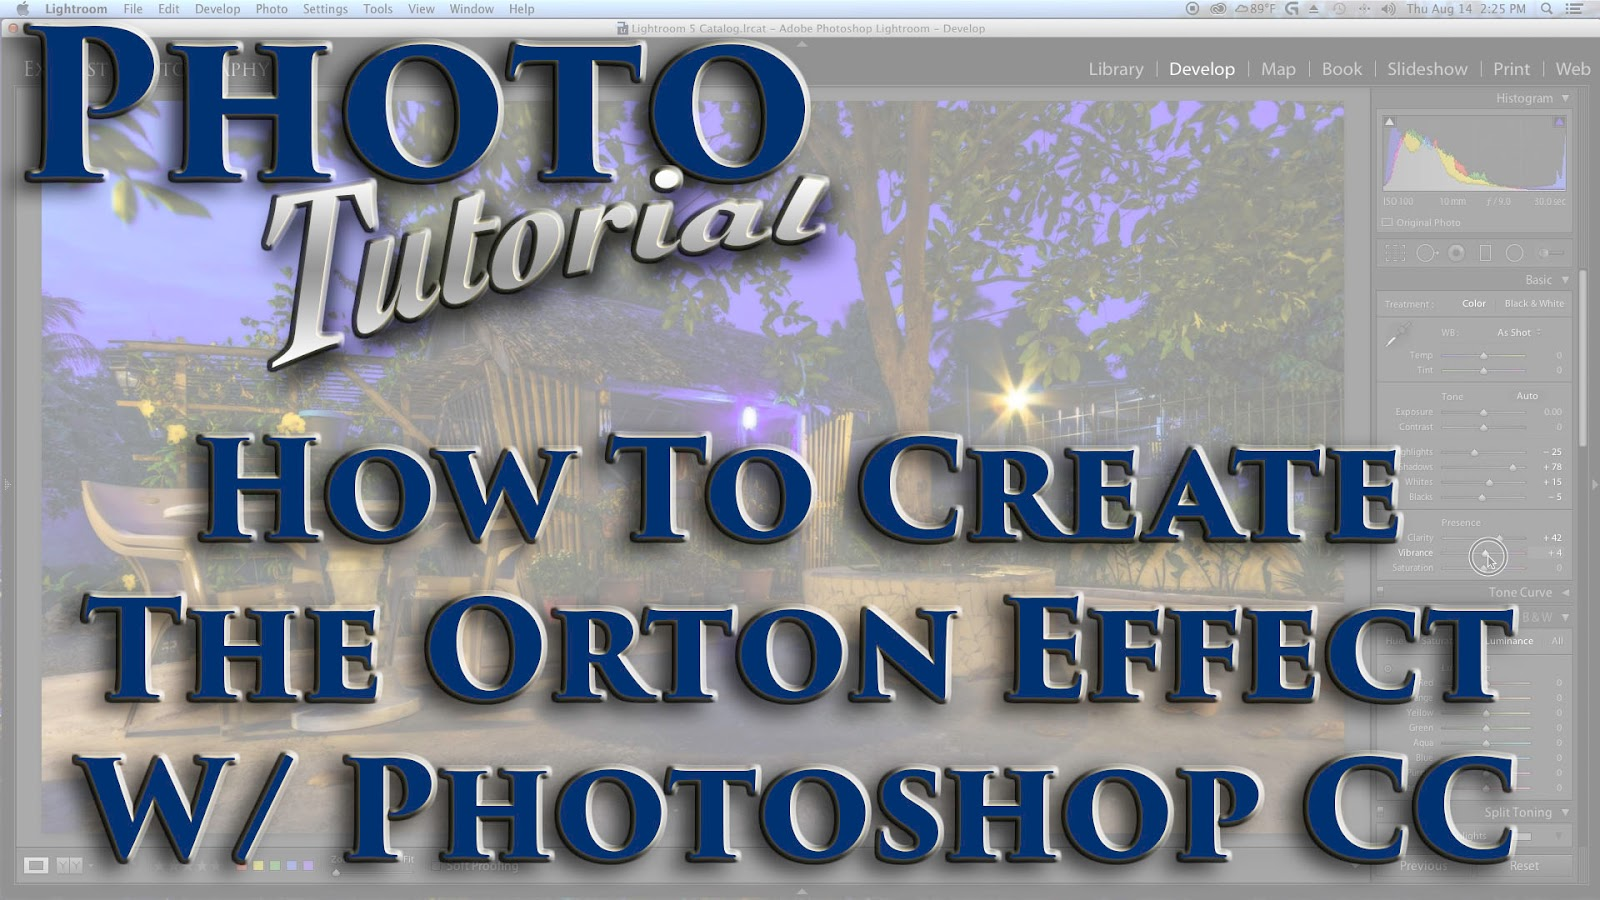 Learn How To Create The Orton Effect With Photoshop CC